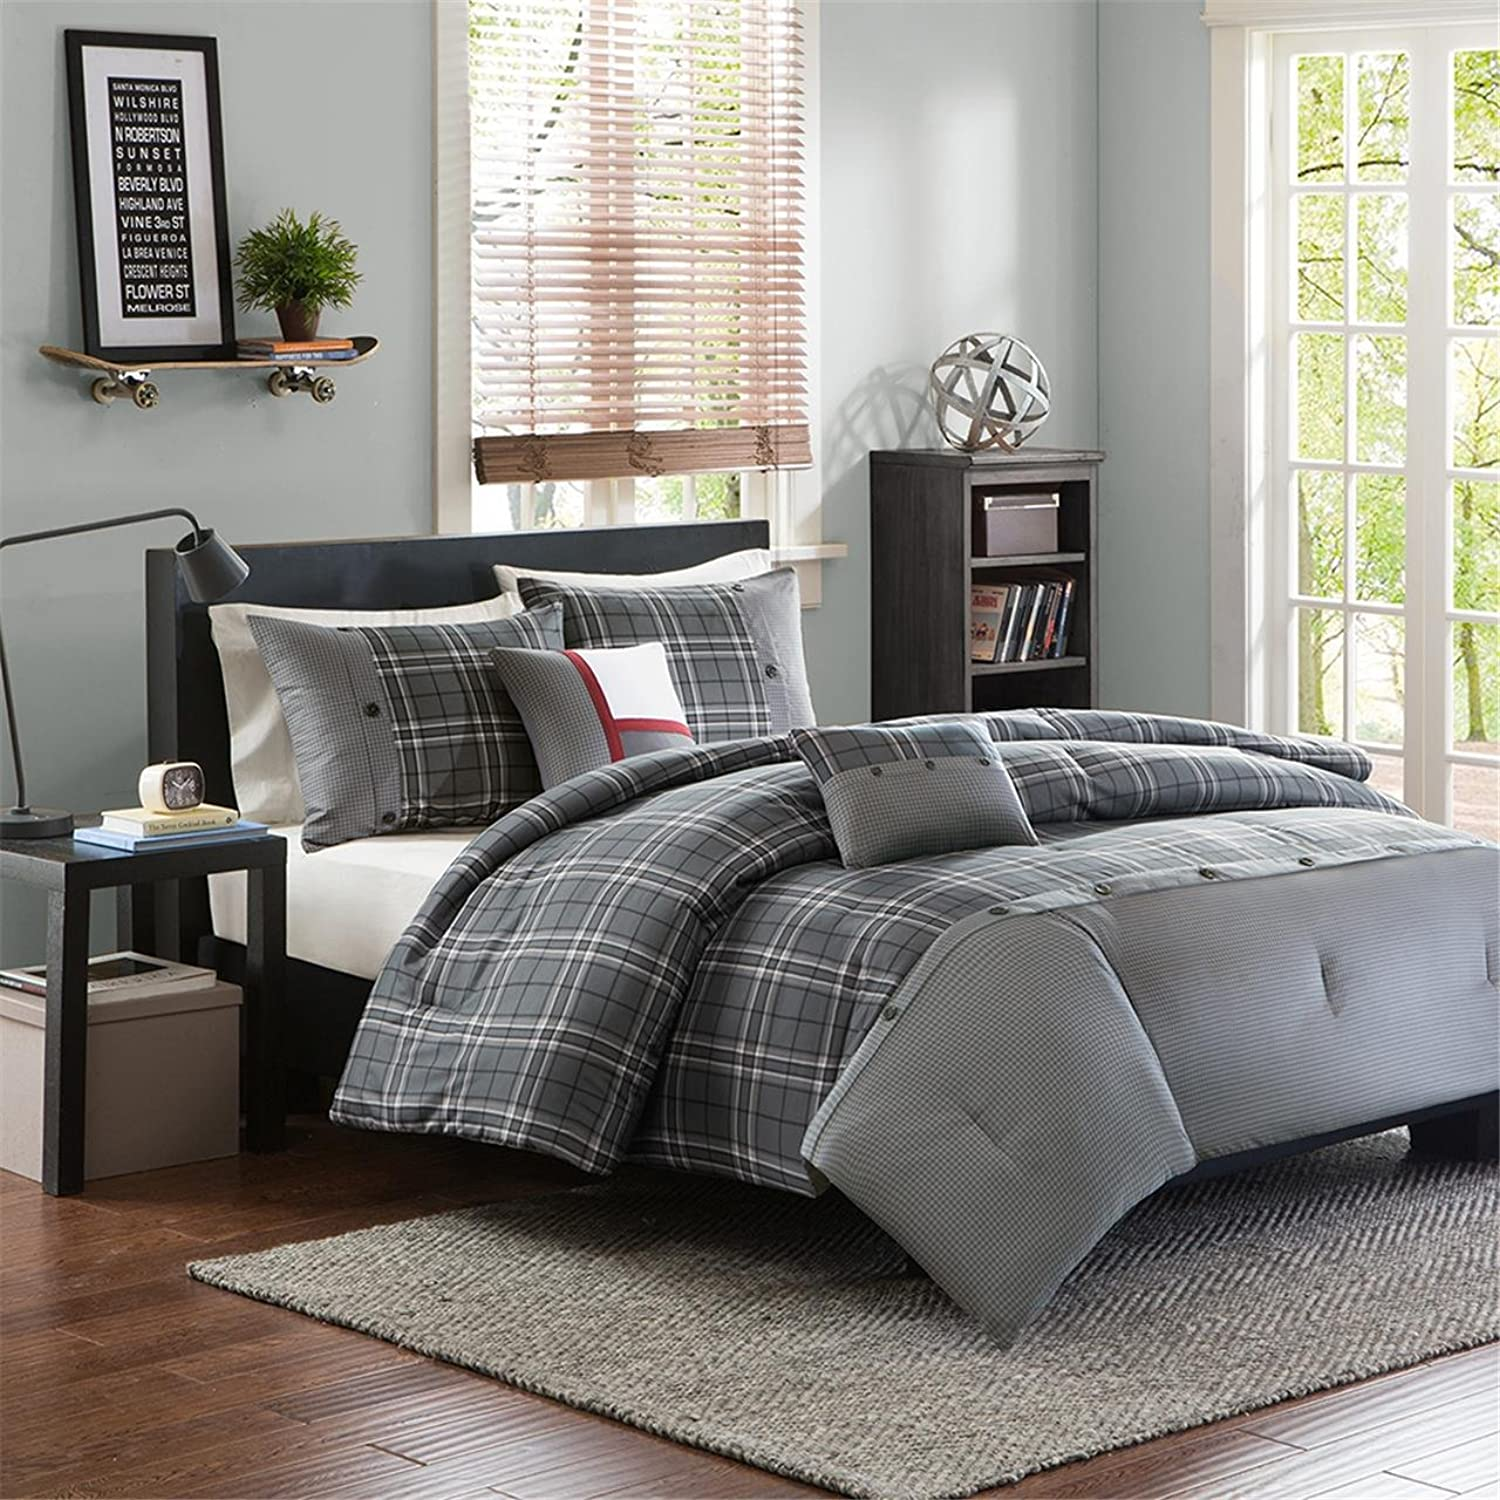 Intelligent Design Daryl 5 Piece Comforter Set, Grey, King California King